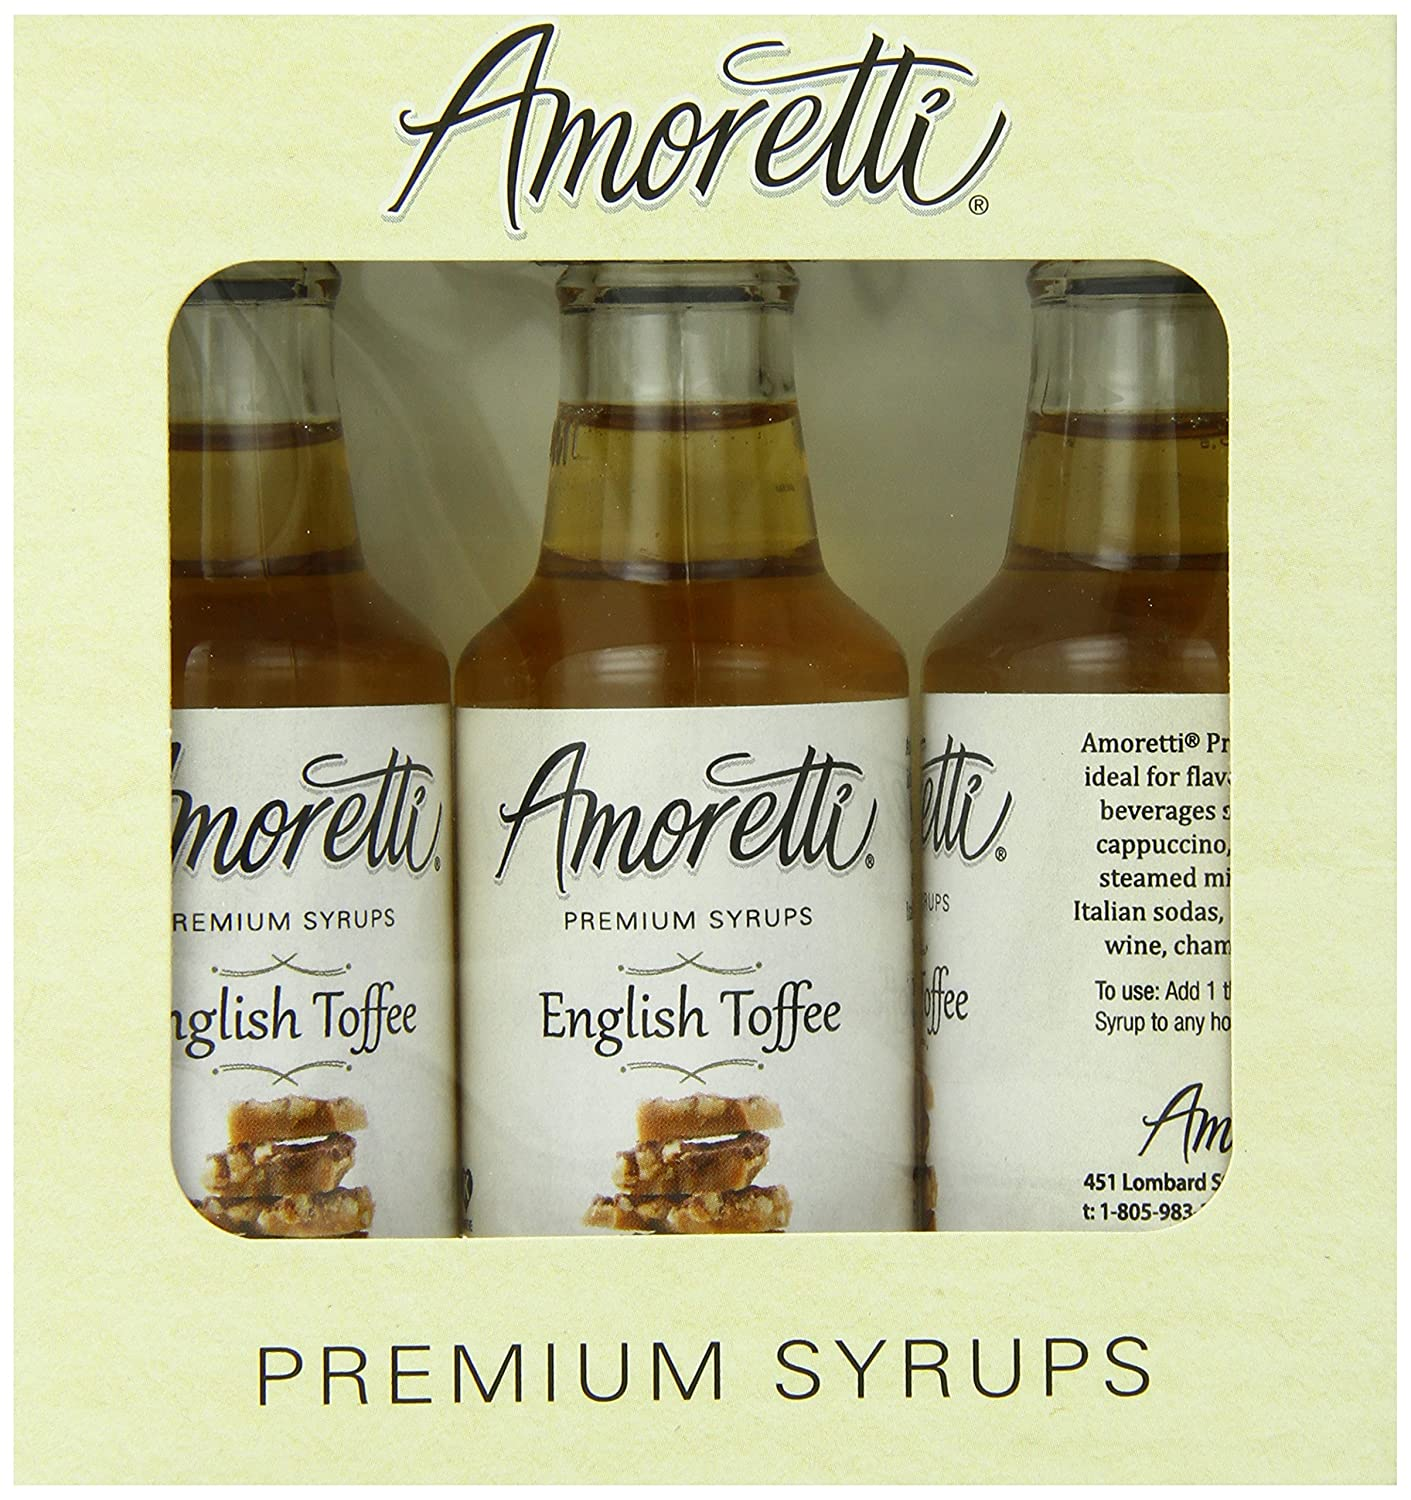 Amoretti Premium English Superior Toffee 3 Syrups 70% OFF Outlet Pack 50ml